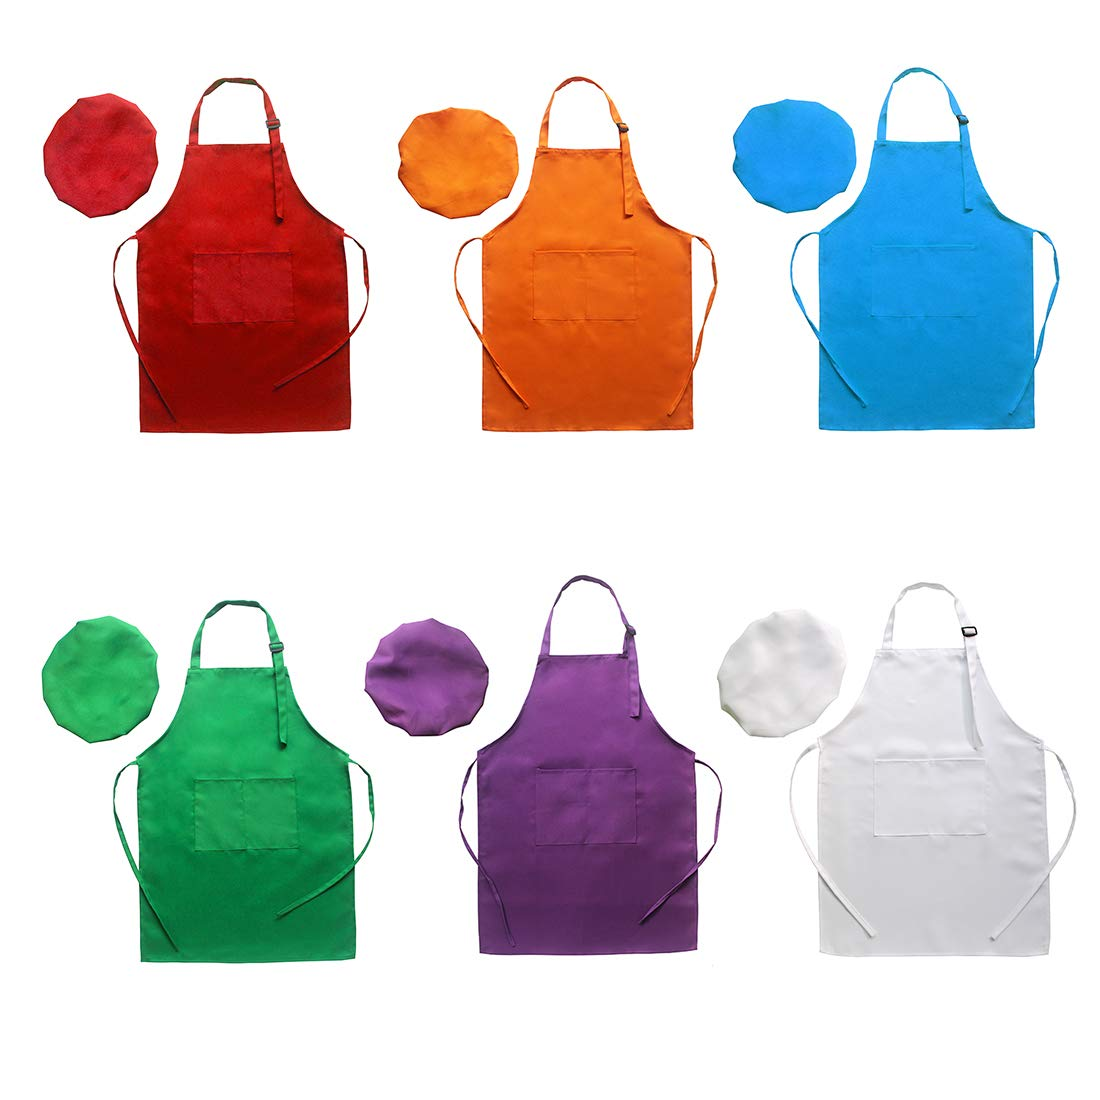 LOYUUY 6 Pcs Adjustable Children Chef Apron Set for Cooking Baking Painting Art Kids Chef Hat and Apron with 2 Pocket (Multicolor, S)